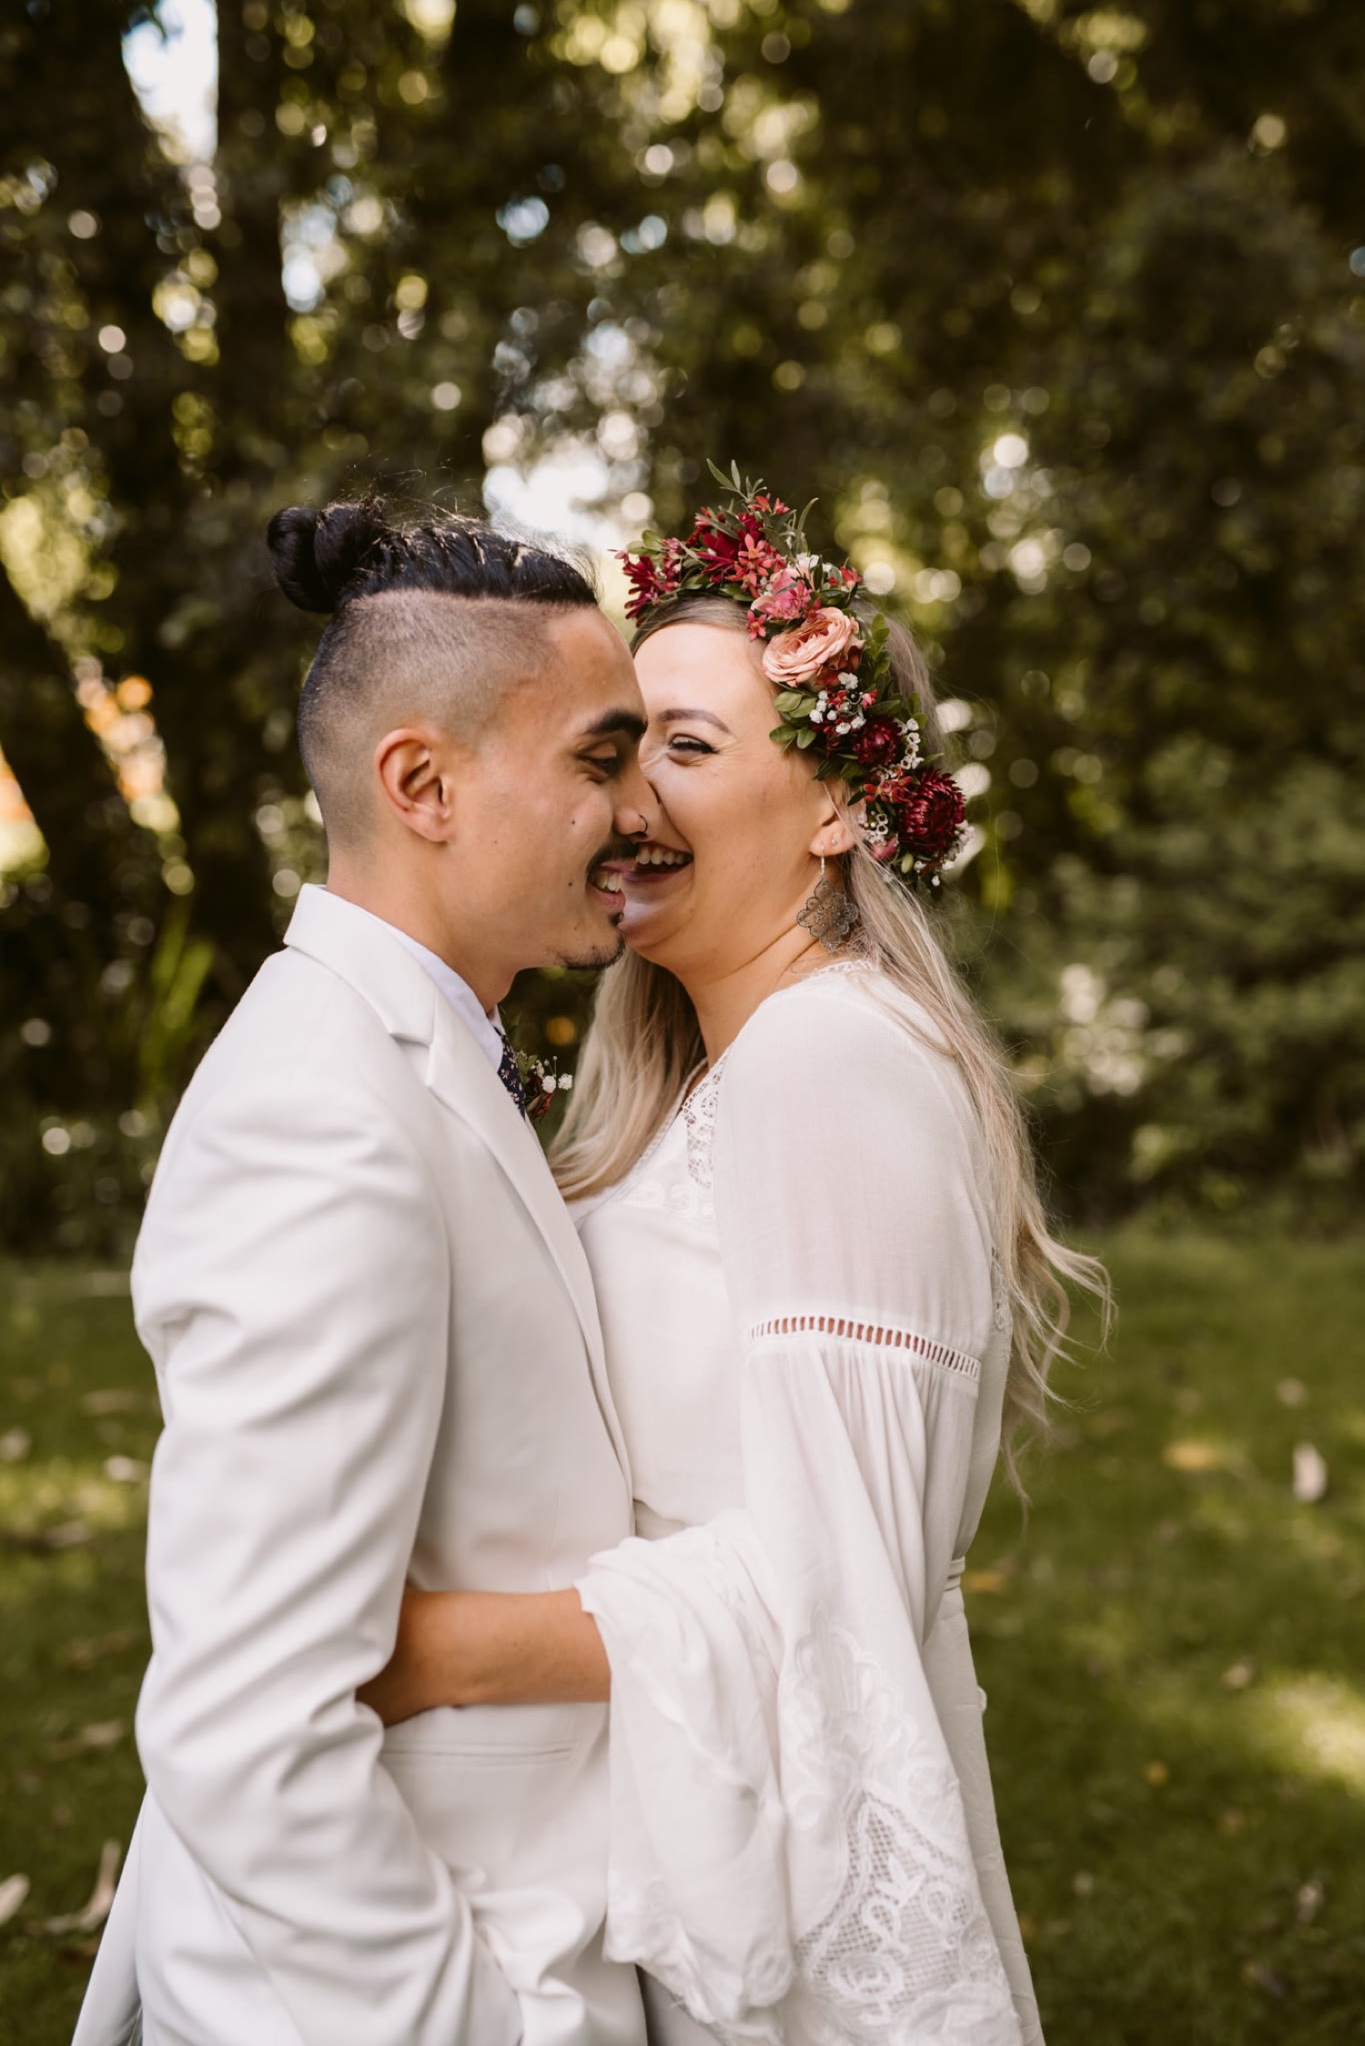 Gather and Tailor Melbourne Wedding Photography-178.jpg